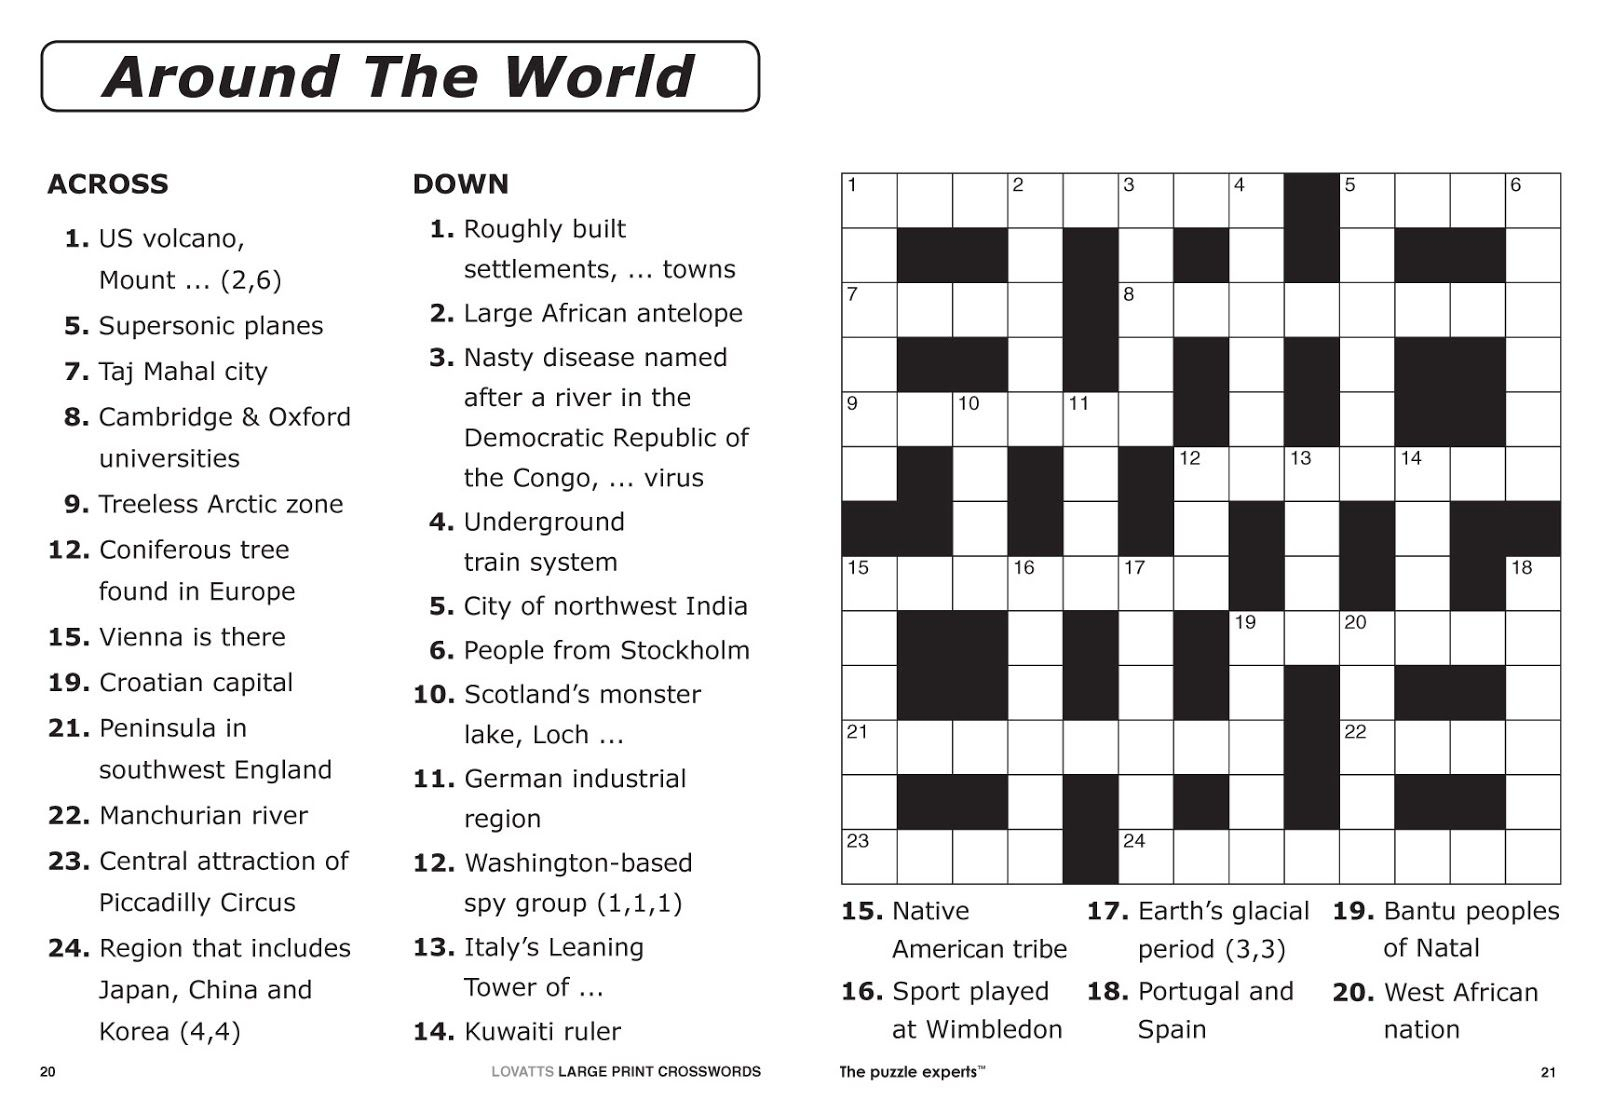 Free Printable Large Print Crossword Puzzles | M3U8 - Printable Puzzles For 13 Year Olds